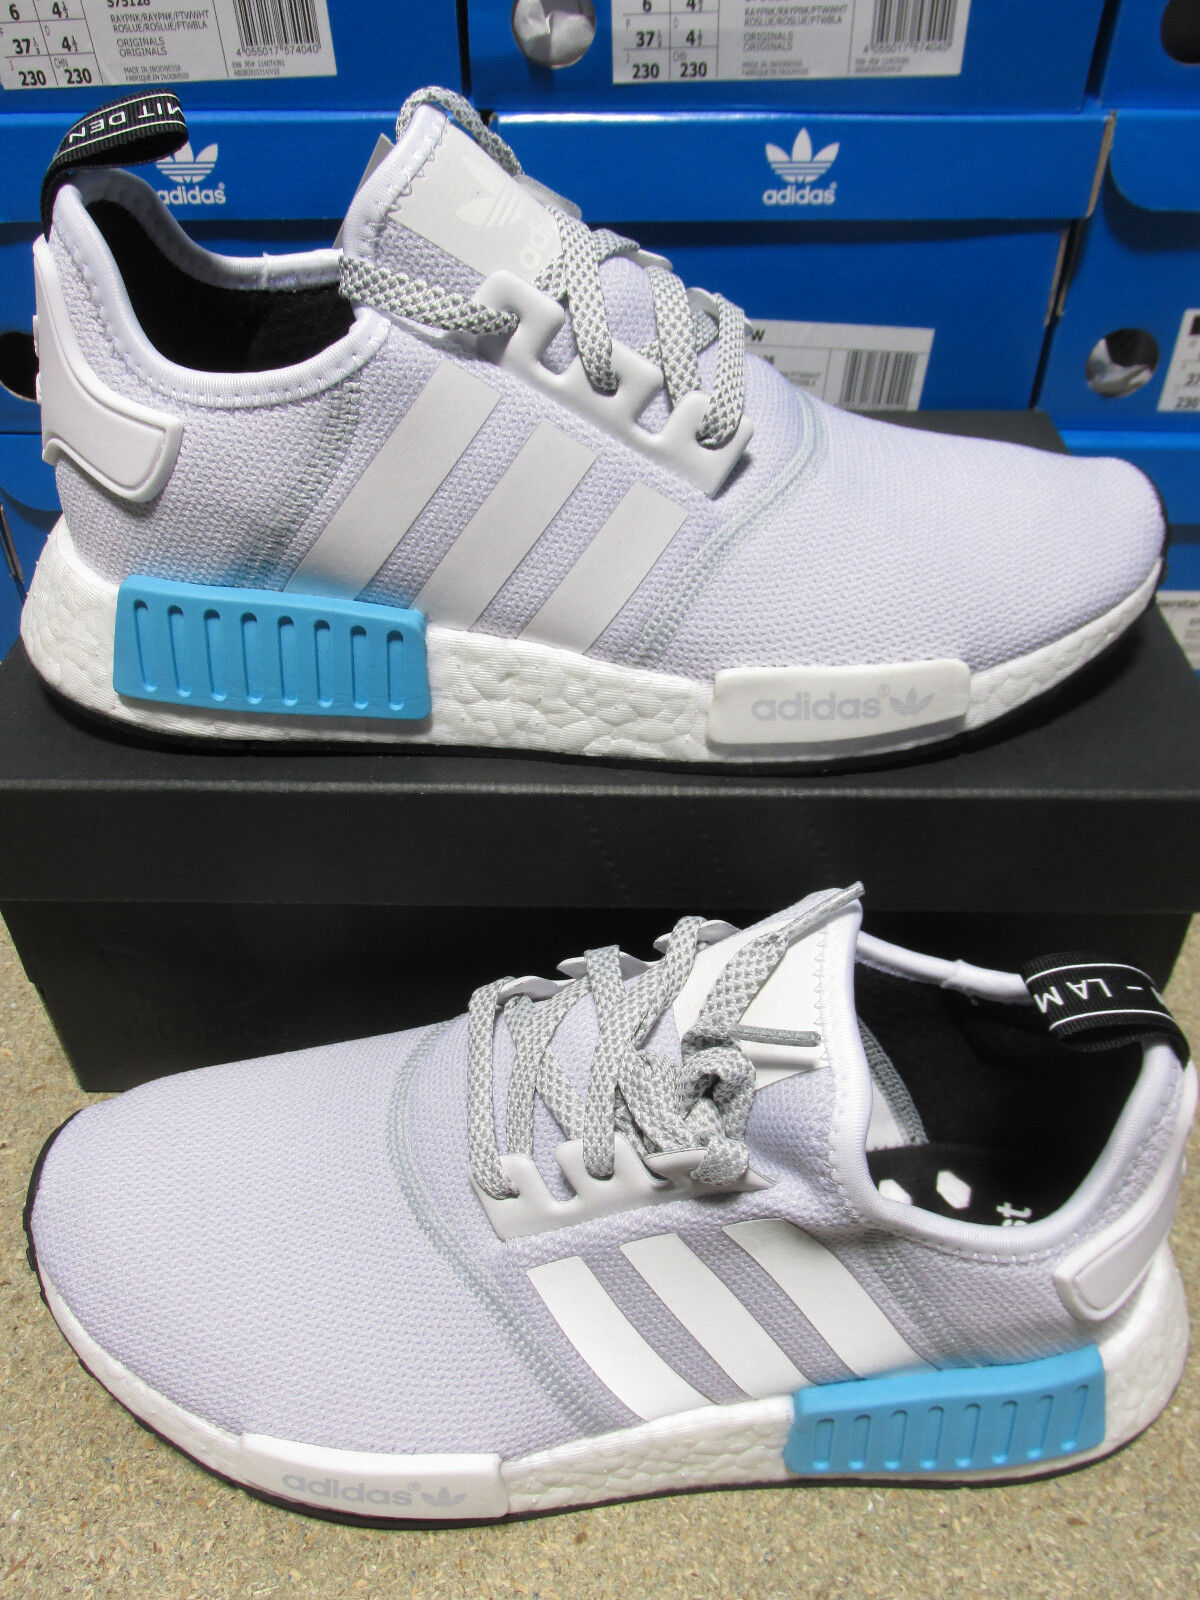 adidas originals NMD R1 mens trainers S31511 sneakers shoes